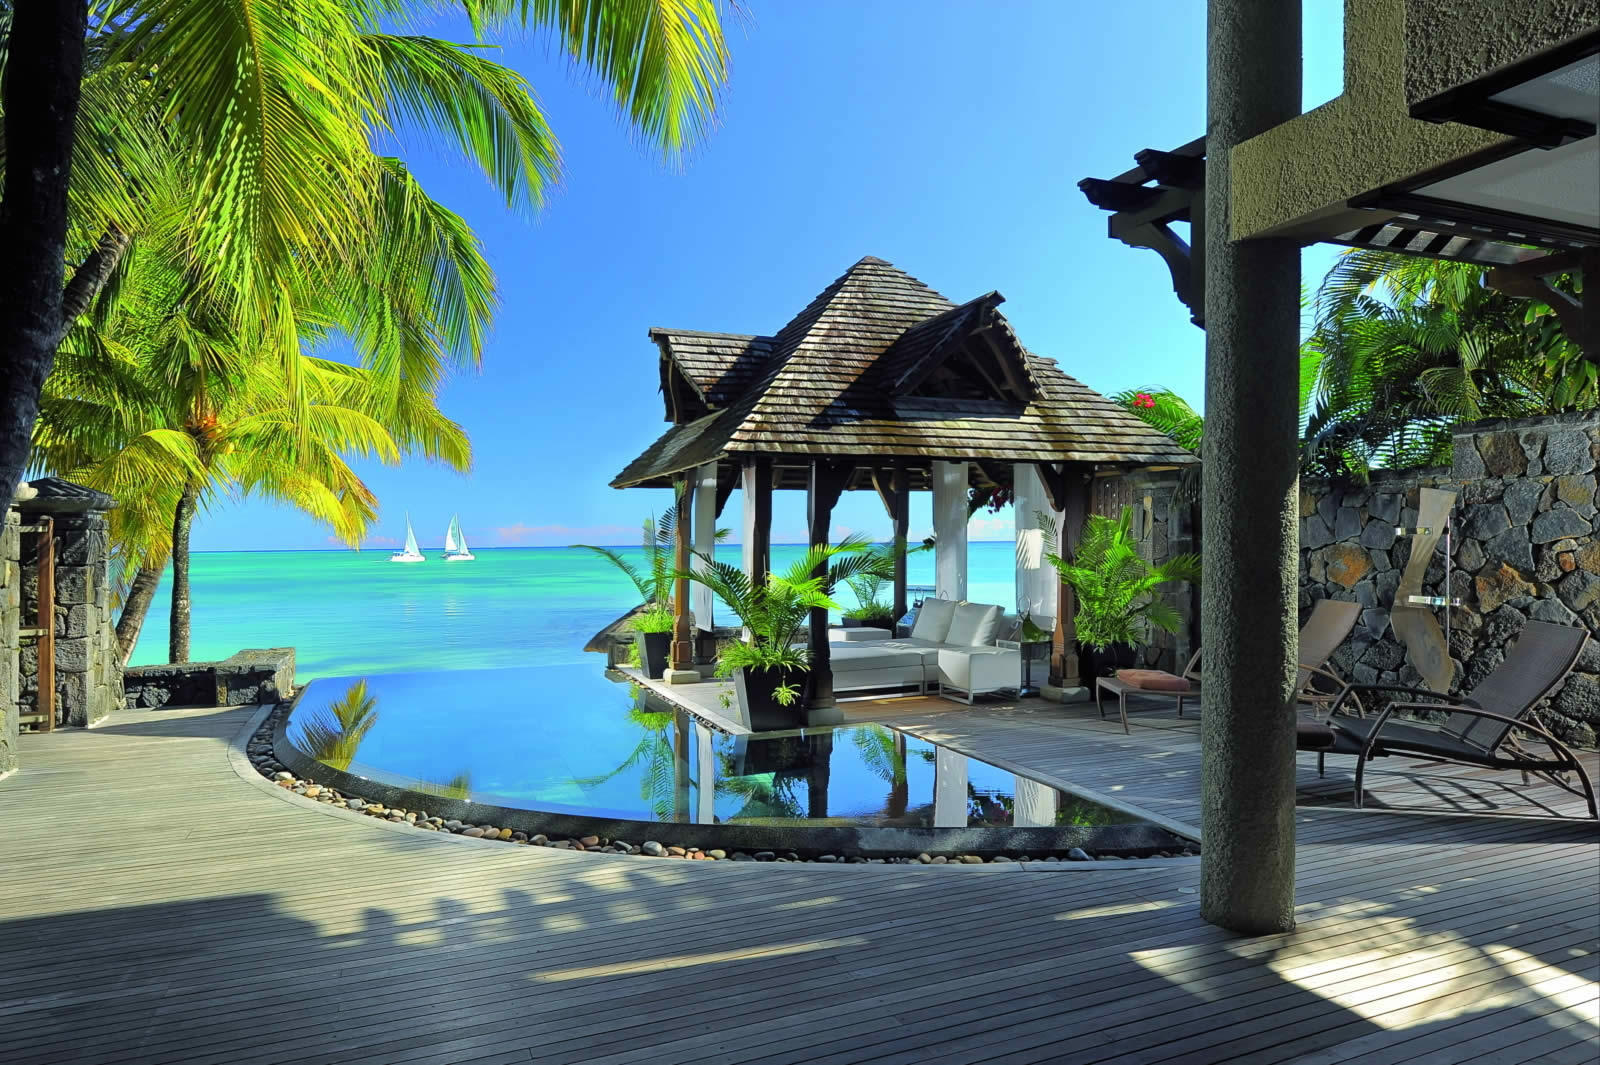 Real Estate Agency In Mauritius BARNES Mauritius Buy